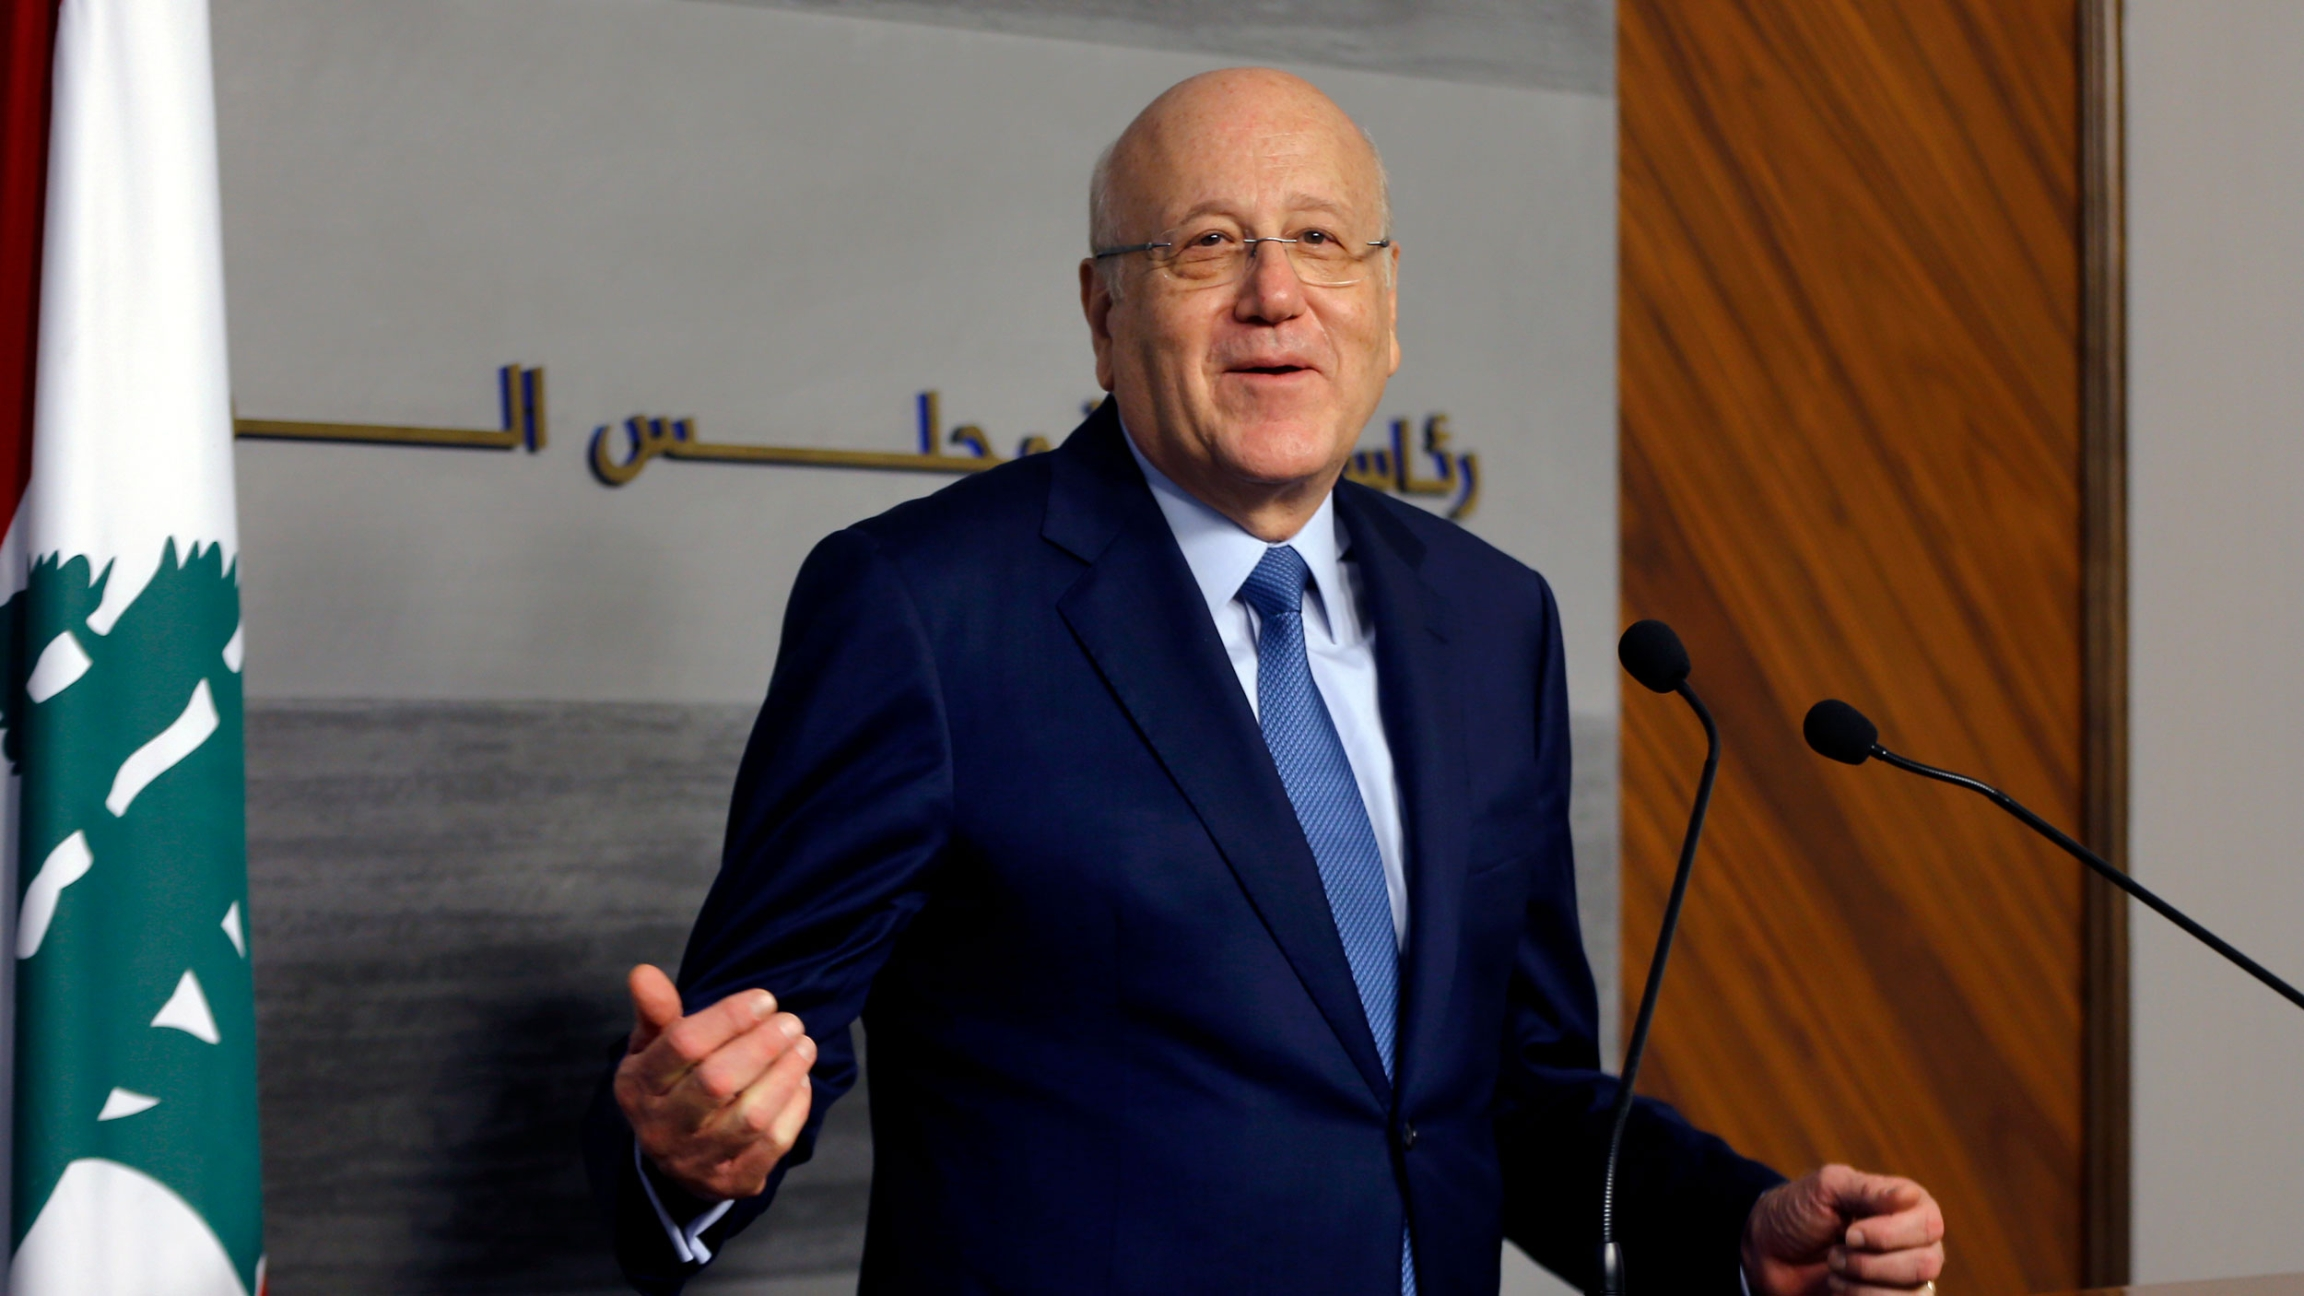 Lebanese Prime Minister Najib Mikati speaks during a joint press conference with his Jordanian counterpart Bisher Khasawneh, at the Government House in downtown Beirut, Lebanon, Thursday, Sept. 30, 2021.